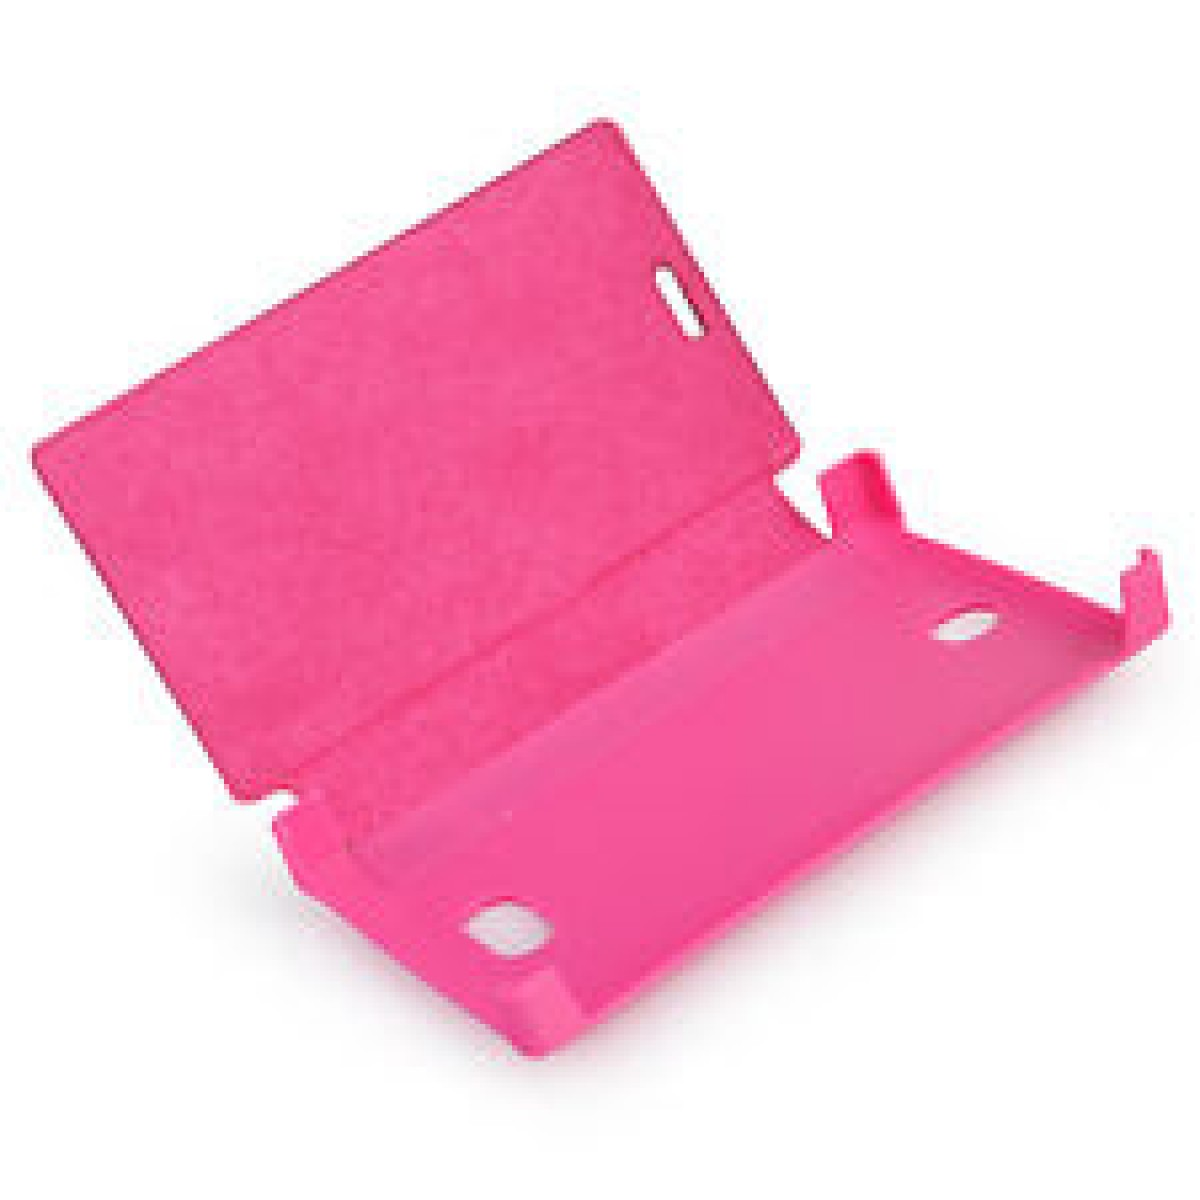 info for 8fec0 a1393 Nokia Asha 501 Pink flip cover - Mobile Accessories